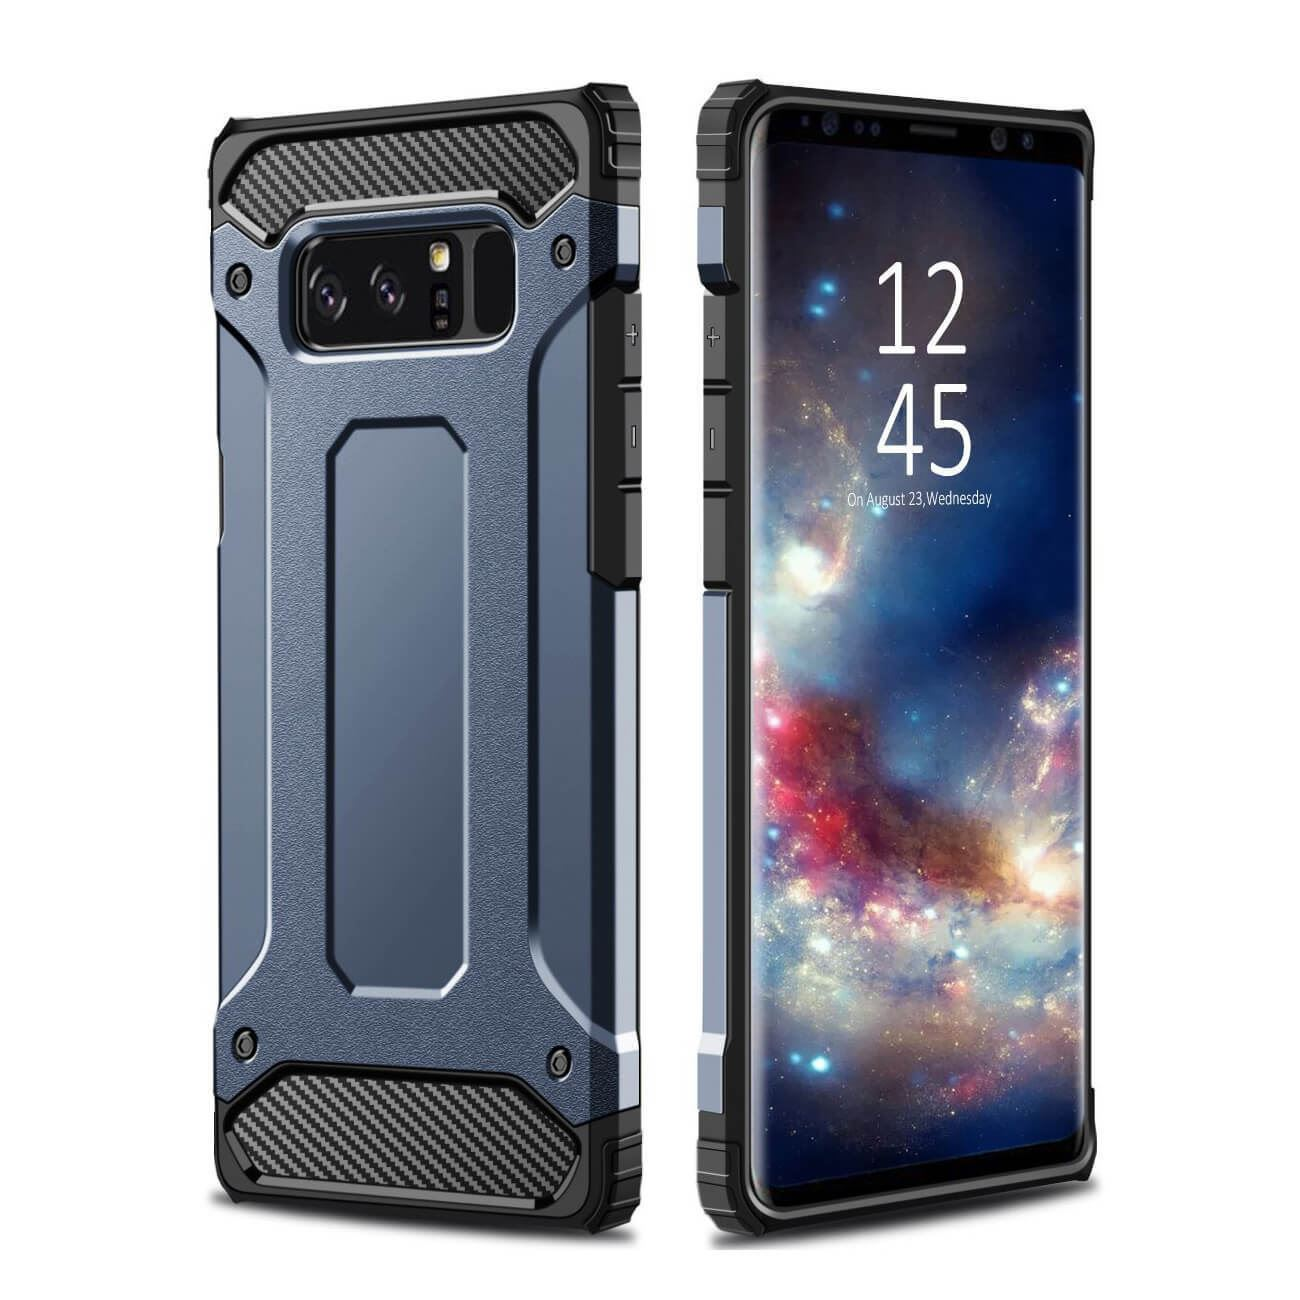 Hybrid-Armor-Shockproof-Rugged-Bumper-Case-For-Samsung-Galaxy-S7-Edge-S8-Note-S9 縮圖 52